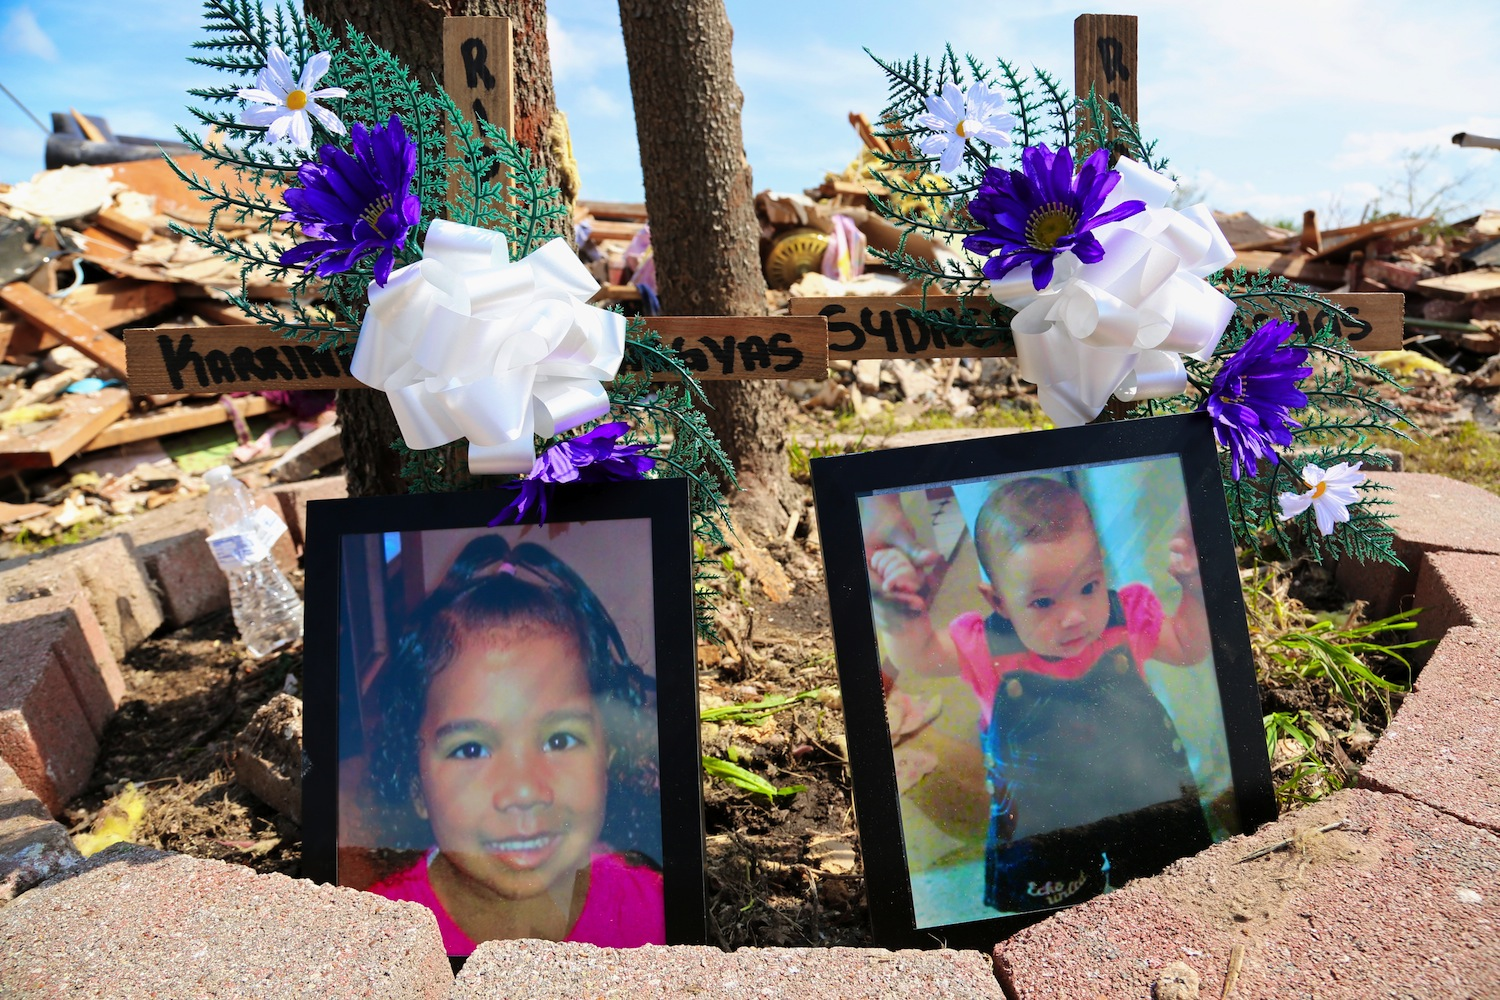 Four-year-old Karrina Vargyas, and her sister Sydnee, 7 months, died after the tornado leveled their home in the Westmoore edition in Oklahoma City.